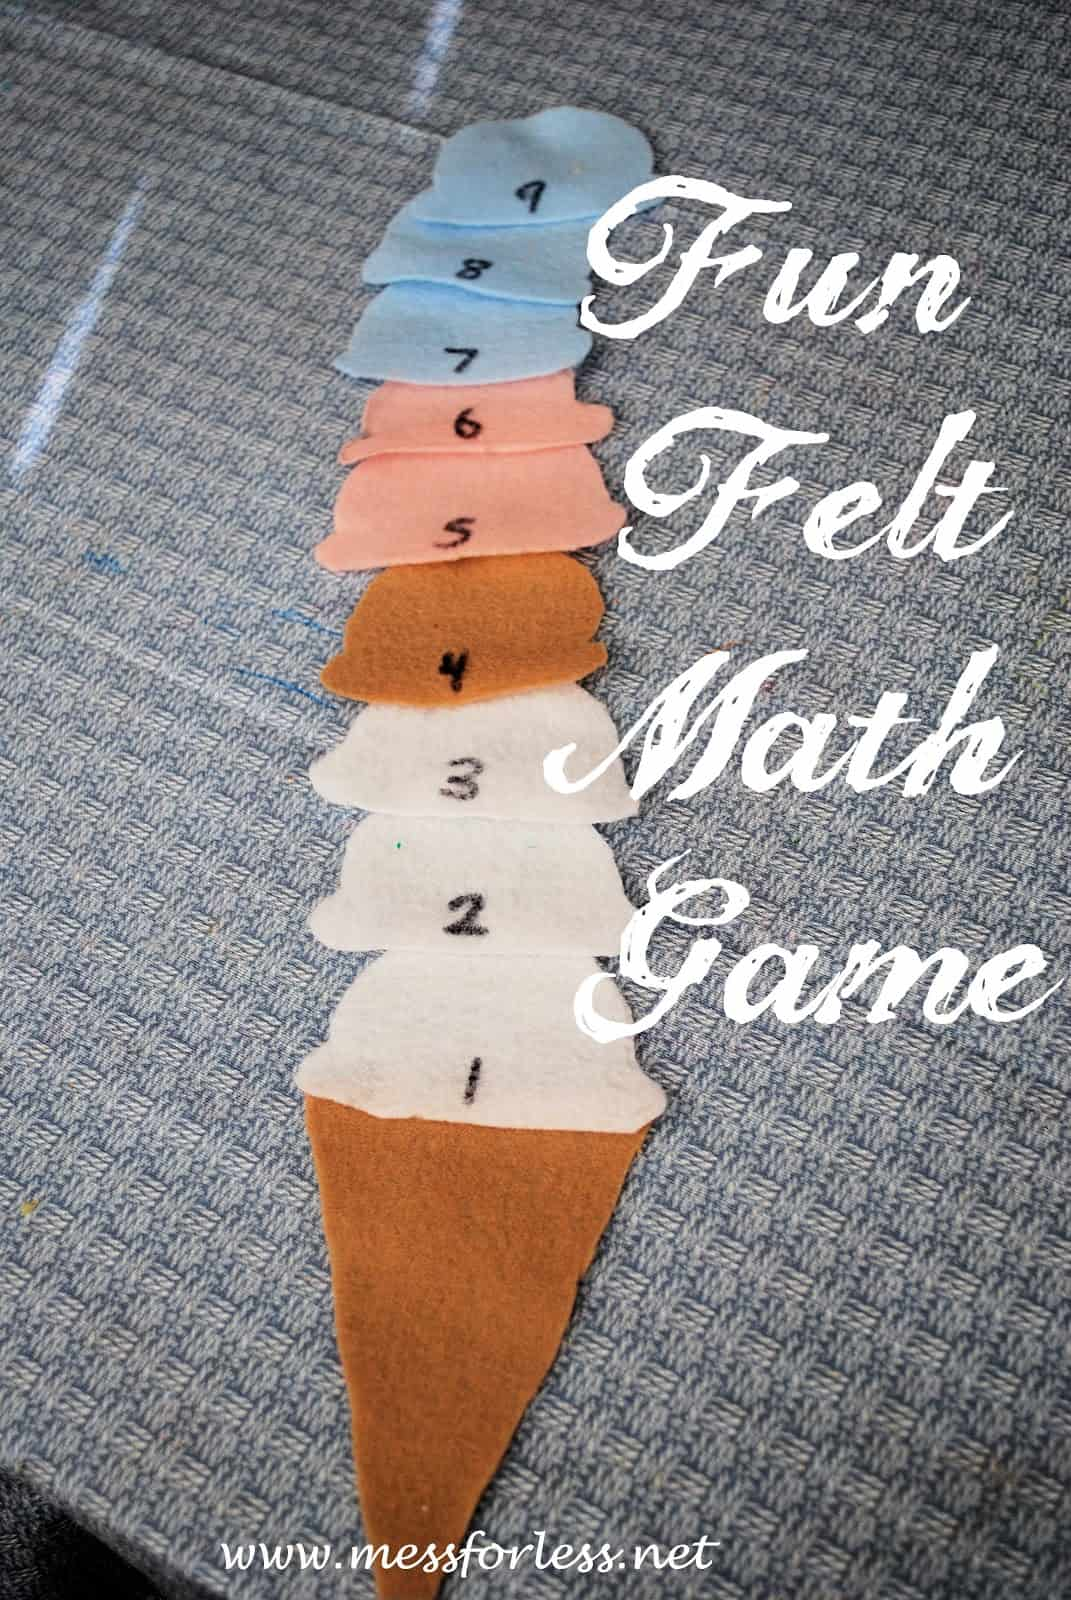 Yummy Ice Cream Math Games - Mess for Less